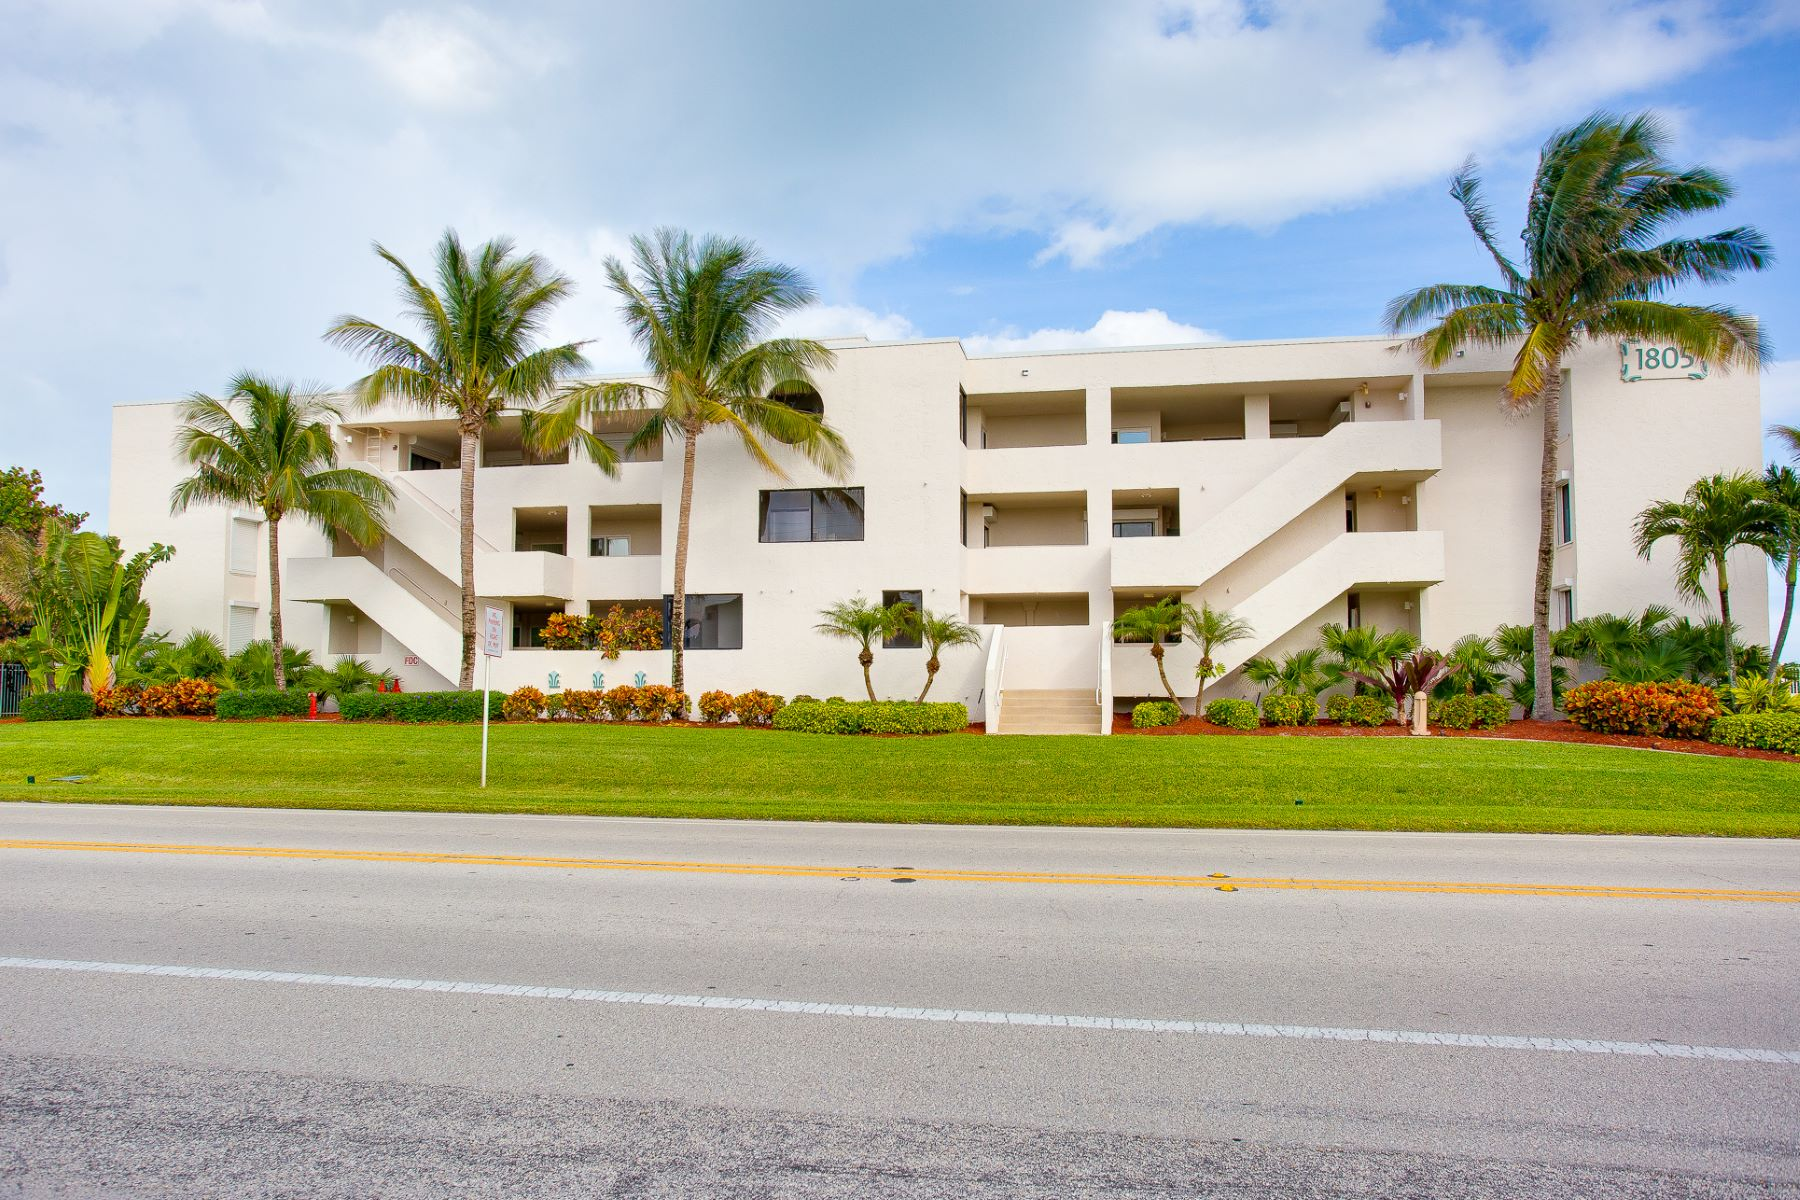 Totally Updated Oceanfront Condo 1805 Atlantic Street 122 Melbourne Beach, Florida 32951 Amerika Birleşik Devletleri